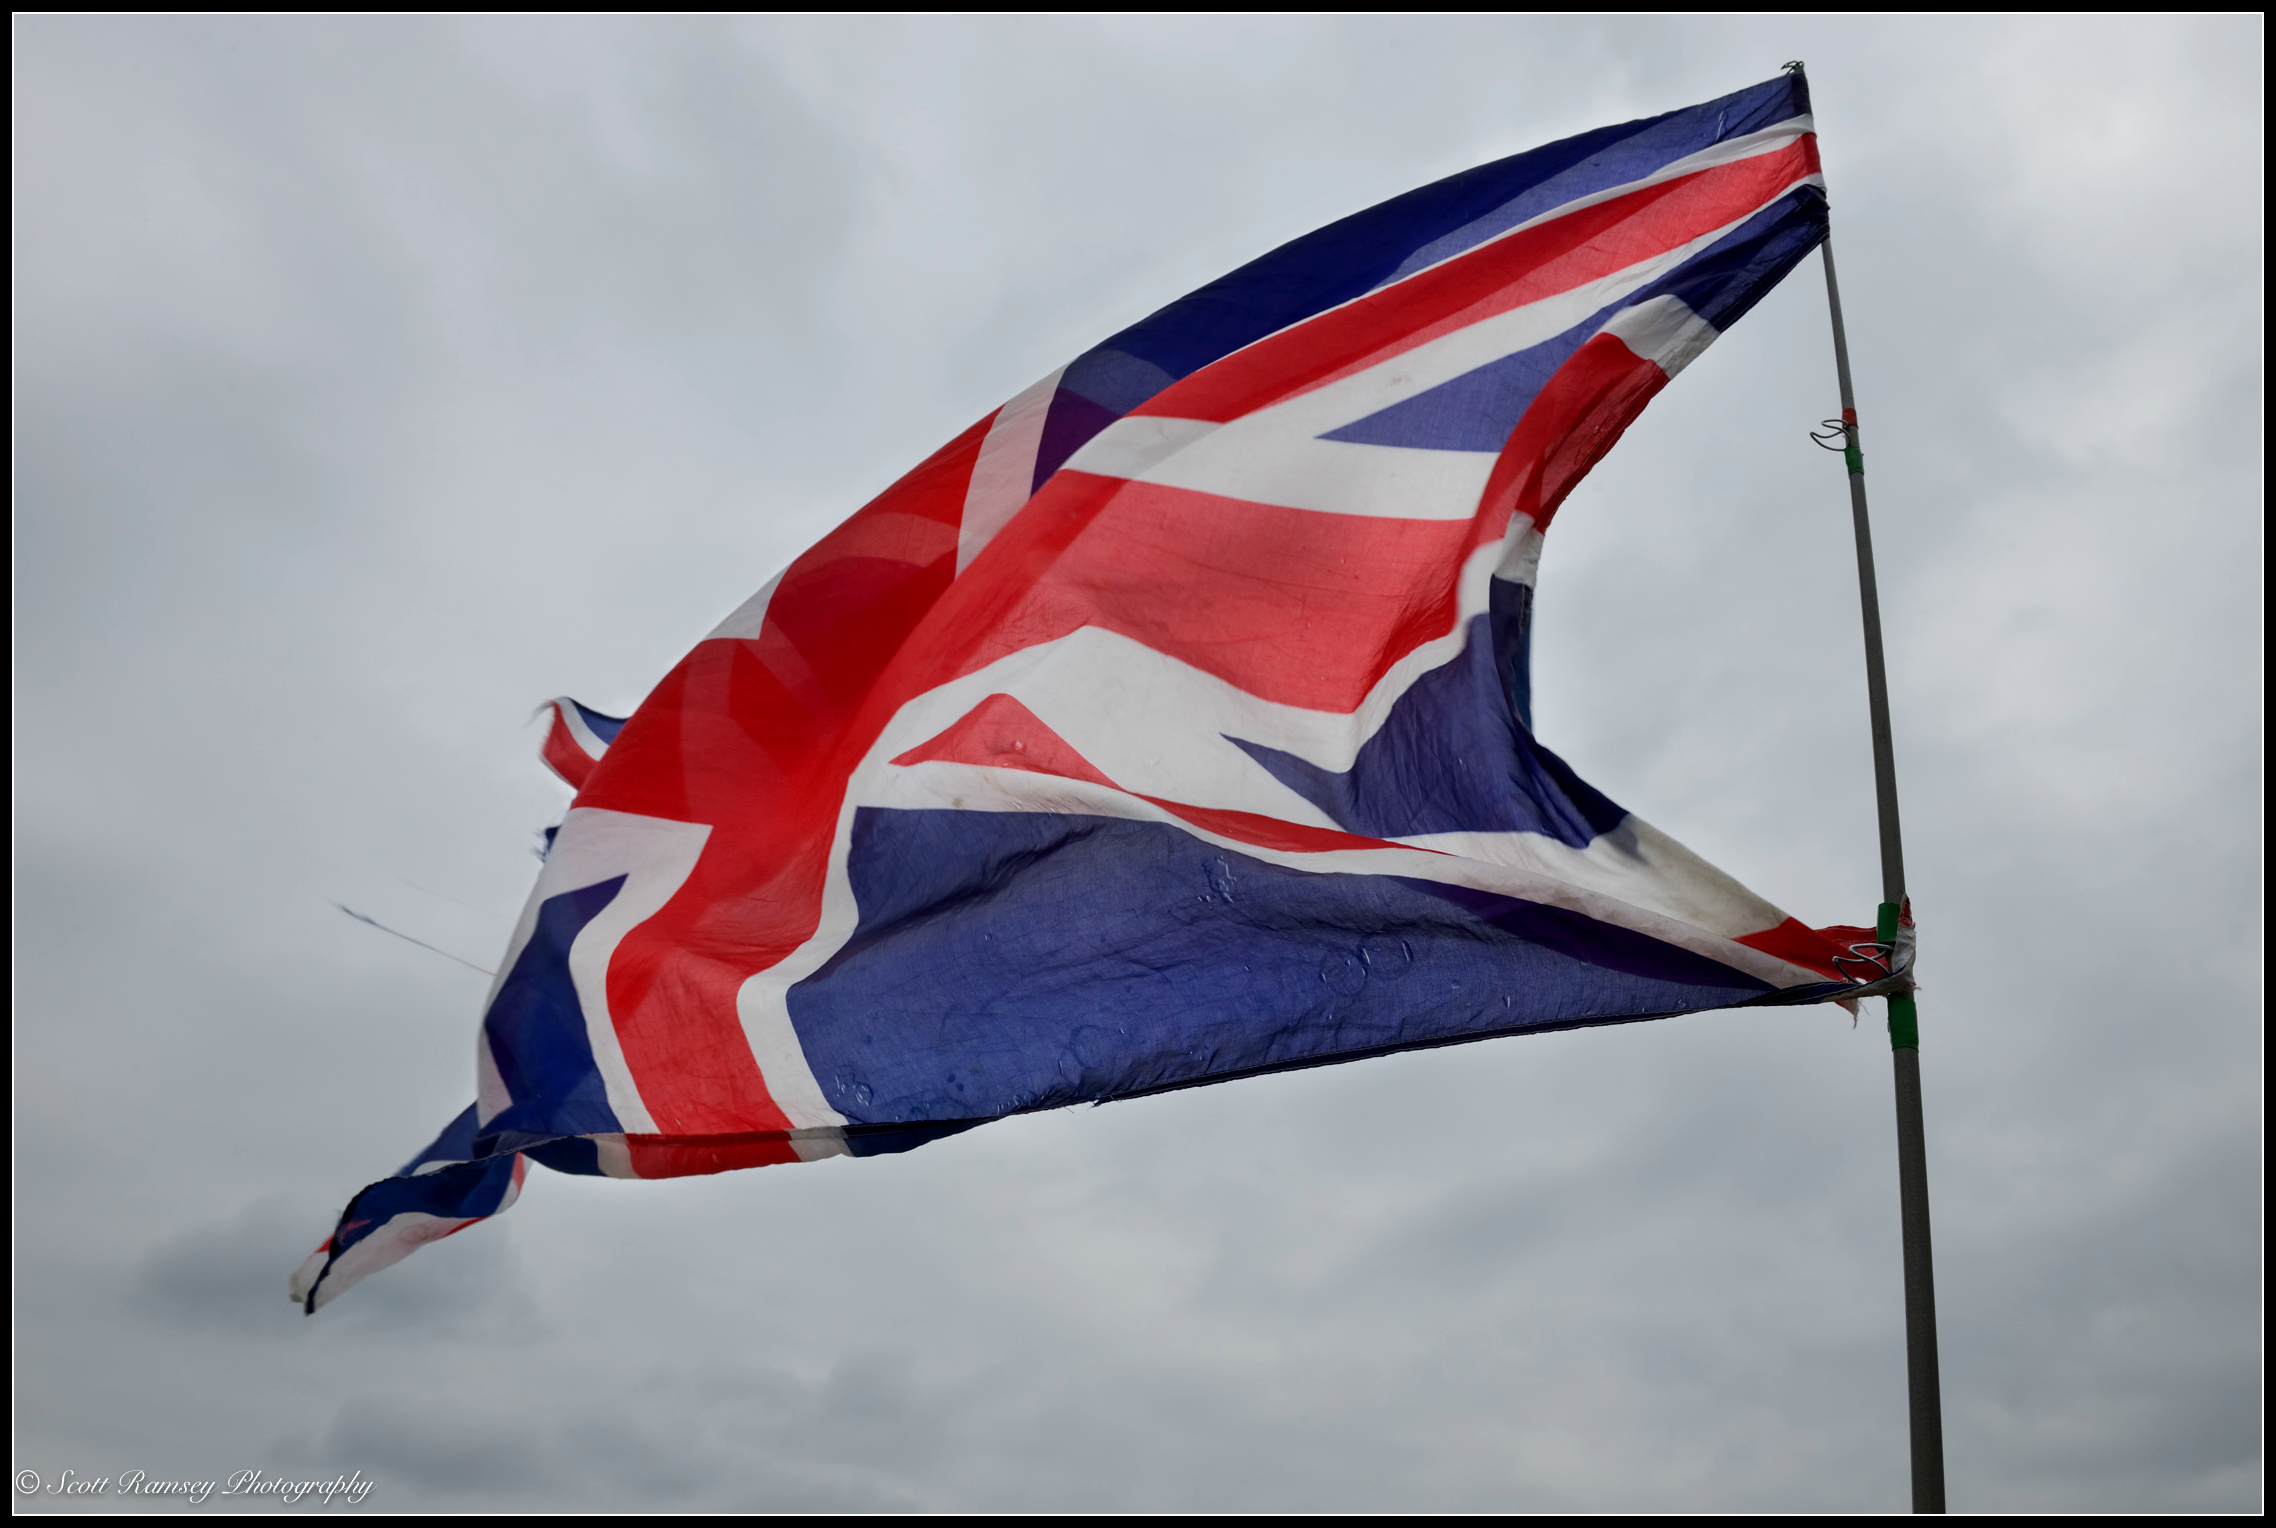 A Union Jack flag flutters in the wind marking the end of75th anniversary of Operation Dynamo in Kent, UK.©Scott Ramsey Photography